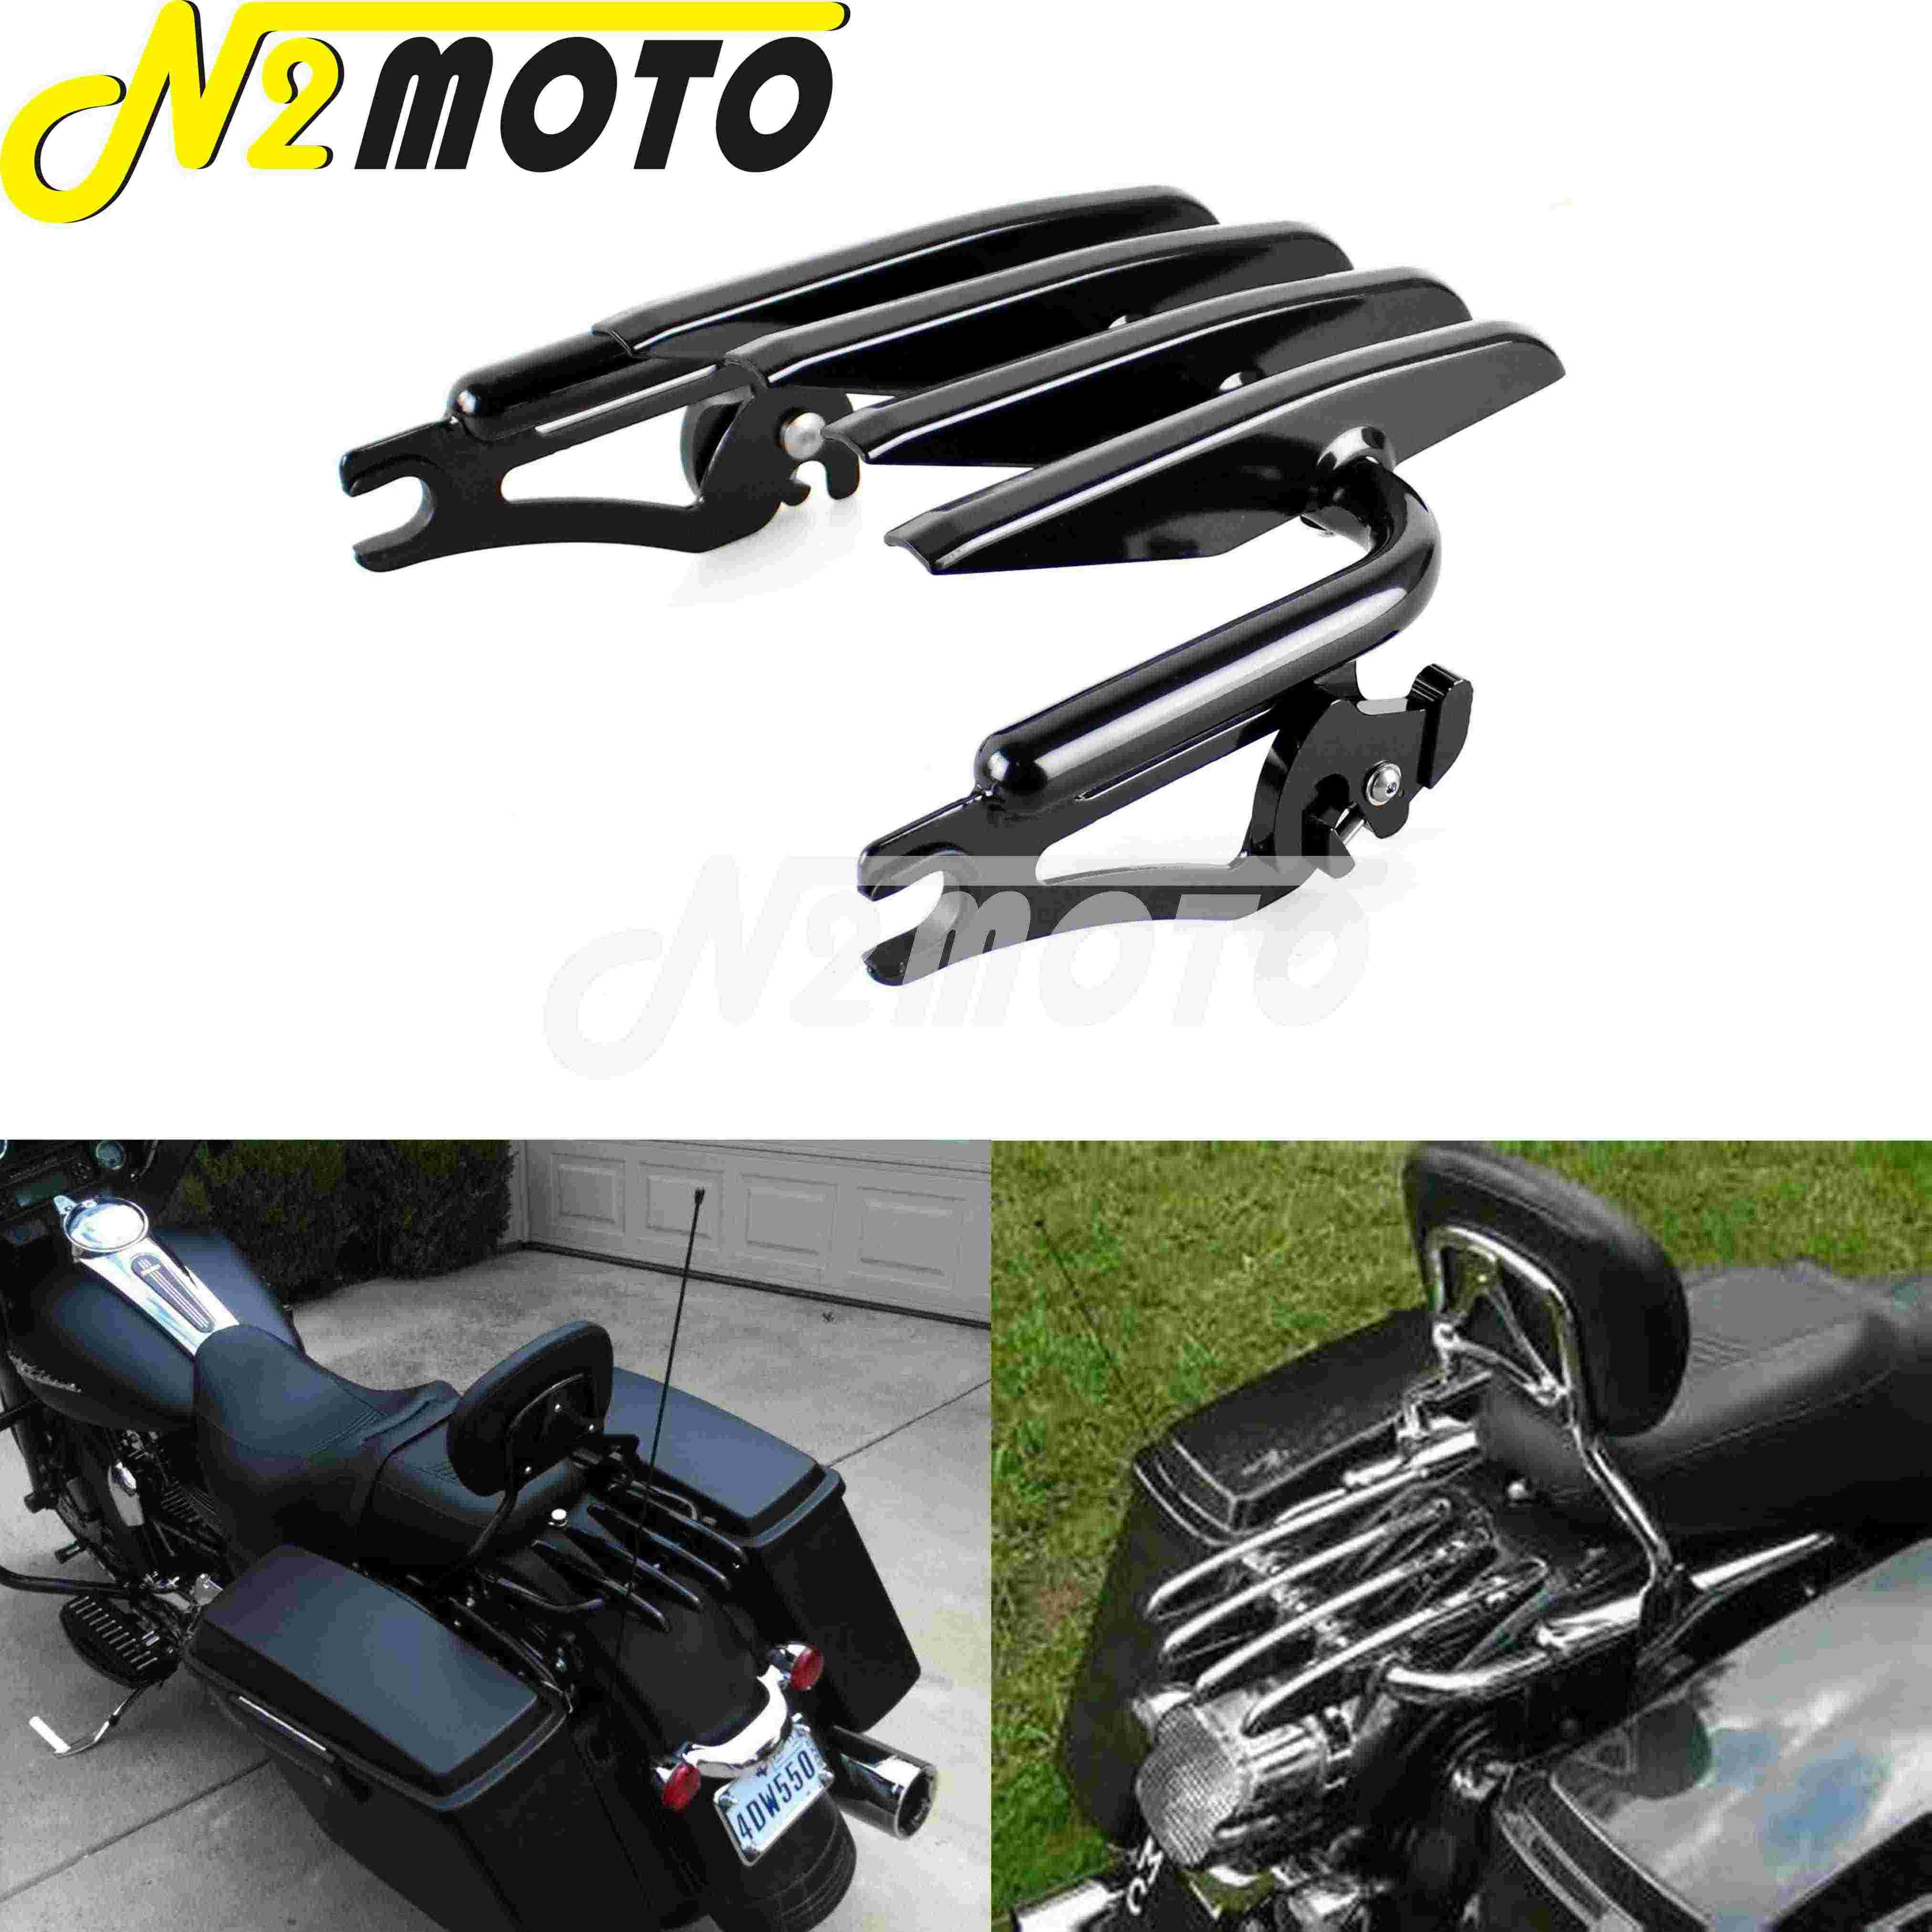 DSISIMO Detachable Chrome Stealth Mounting Luggage Rack Fits For Touring Road King Road Glide Street Glide Electra Glide FLHR FLHT FLHX FLTR 2009-2020